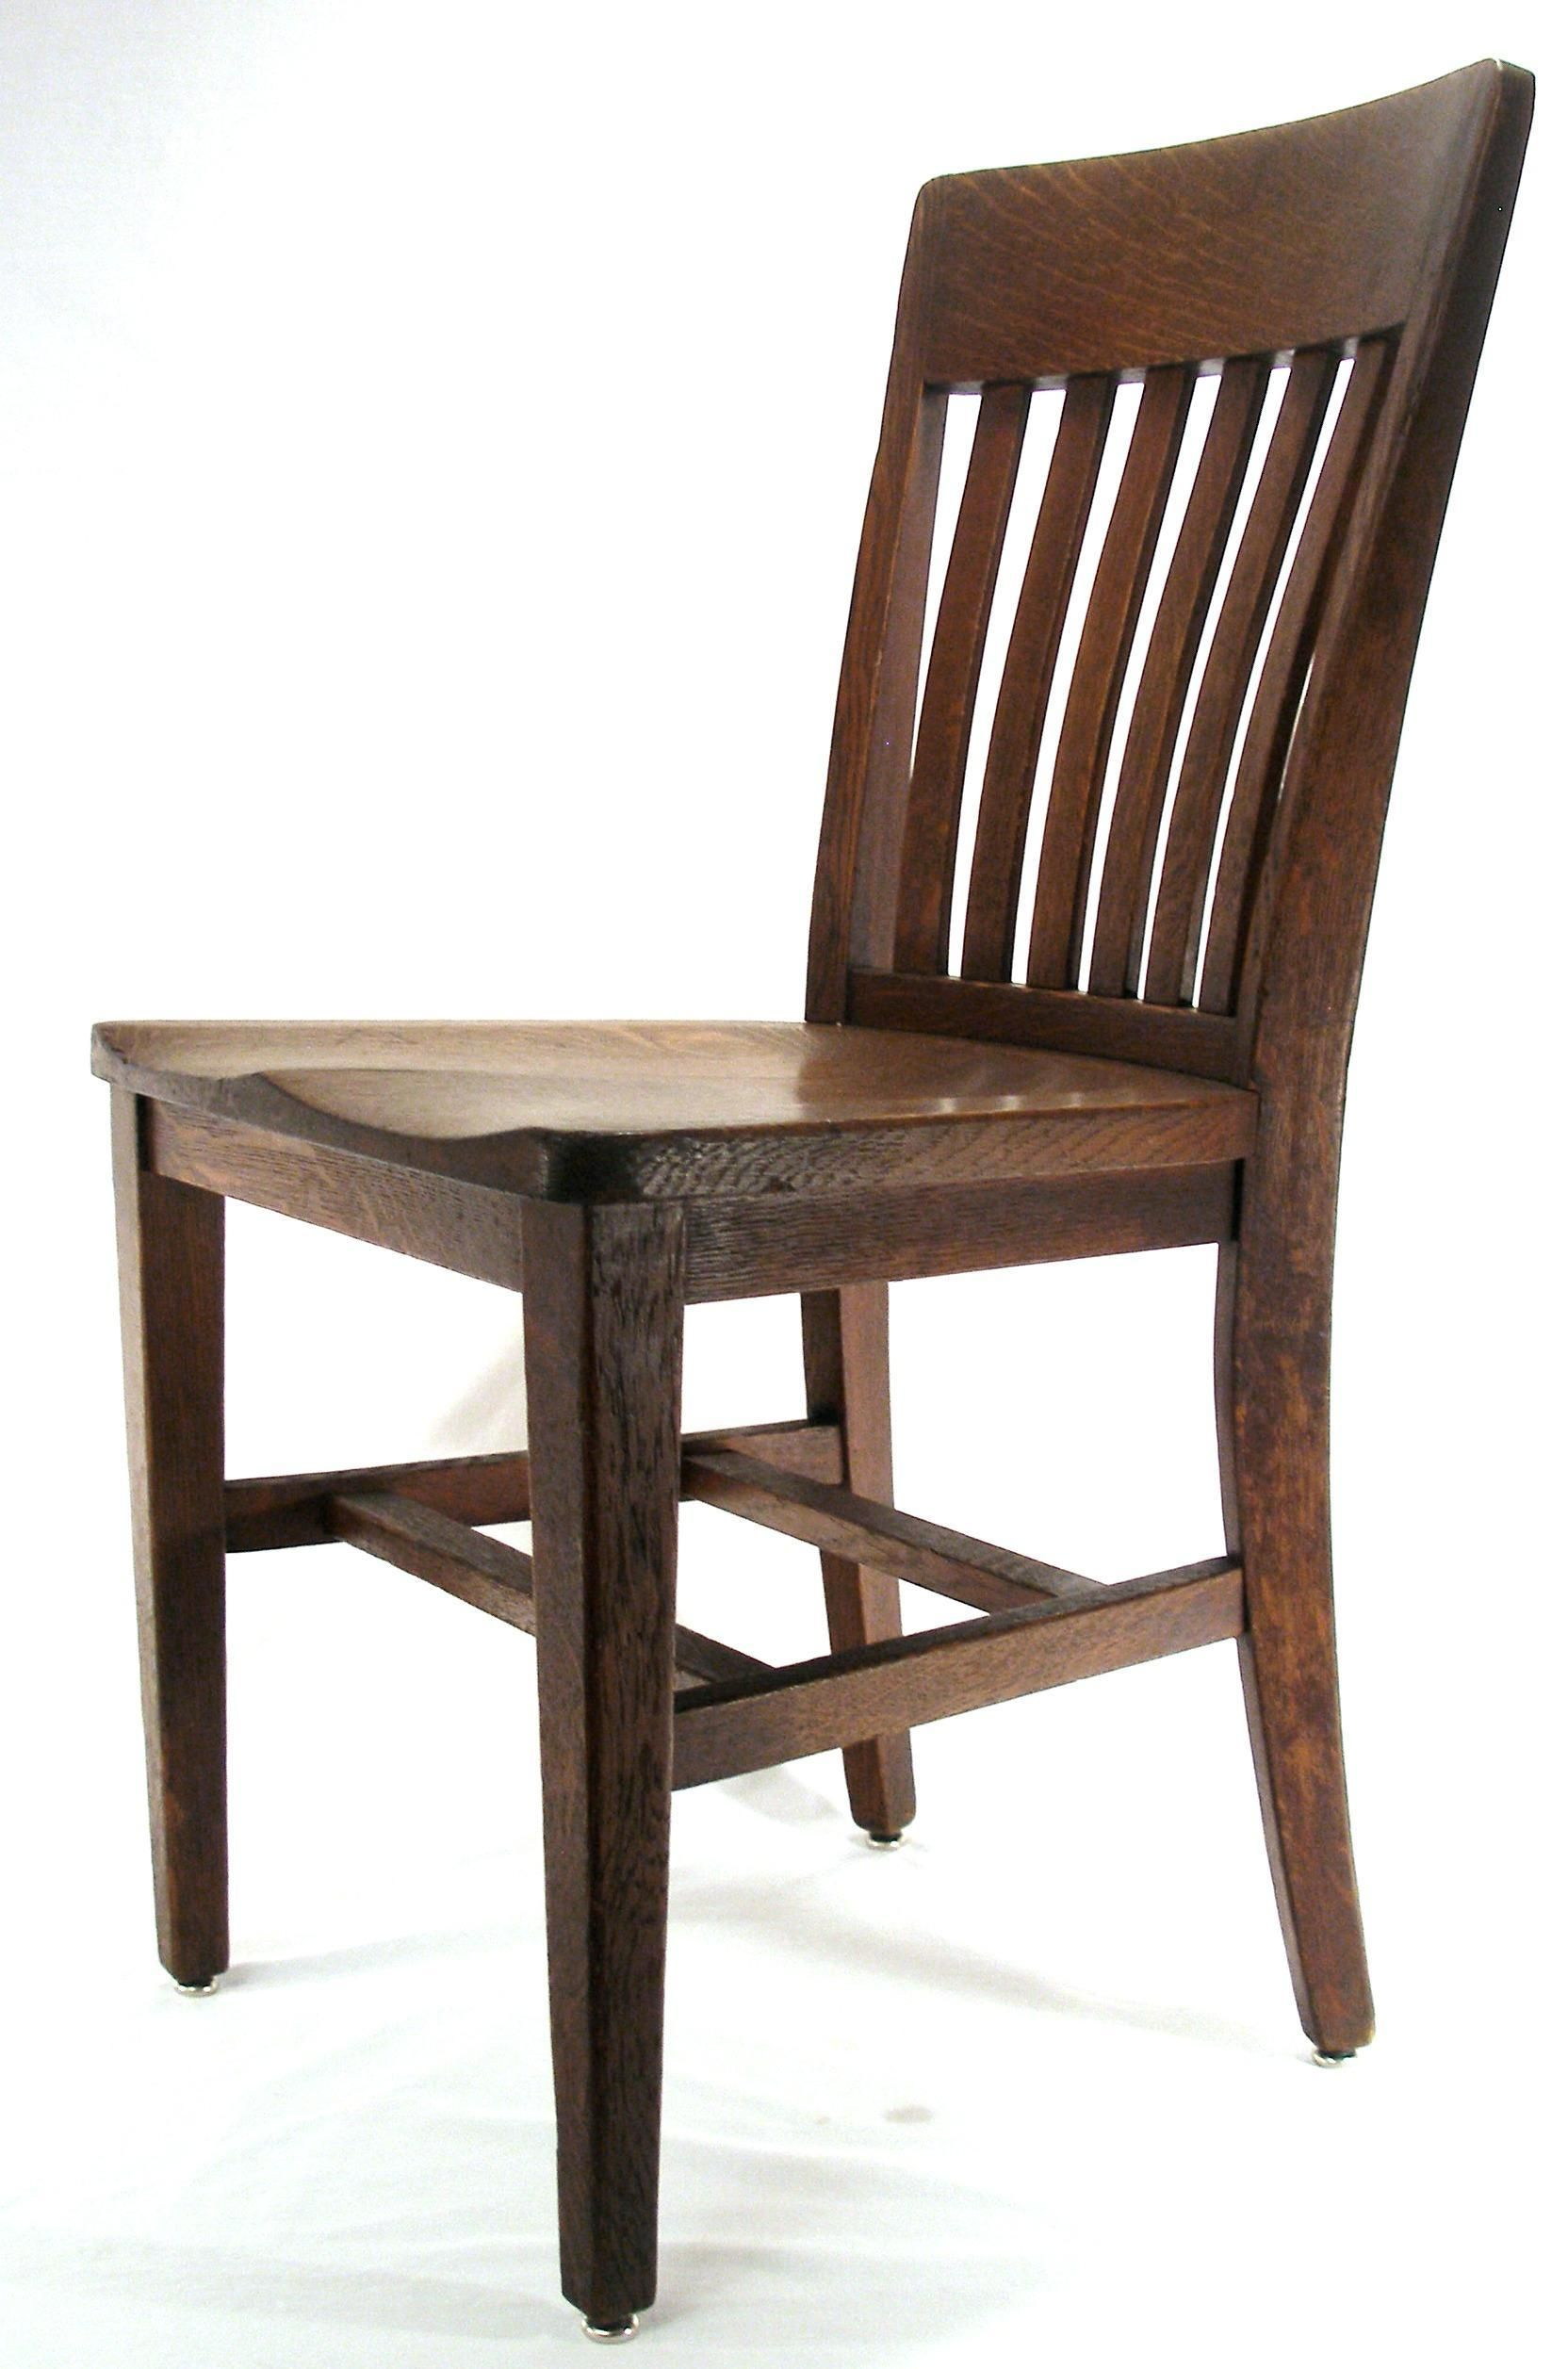 Antique Mission Arts U0026 Crafts B.L. Marble Chair Co. Solid Oak Wood Kitchen  / Desk / Lawyer Hall /Office /Chair. 7062